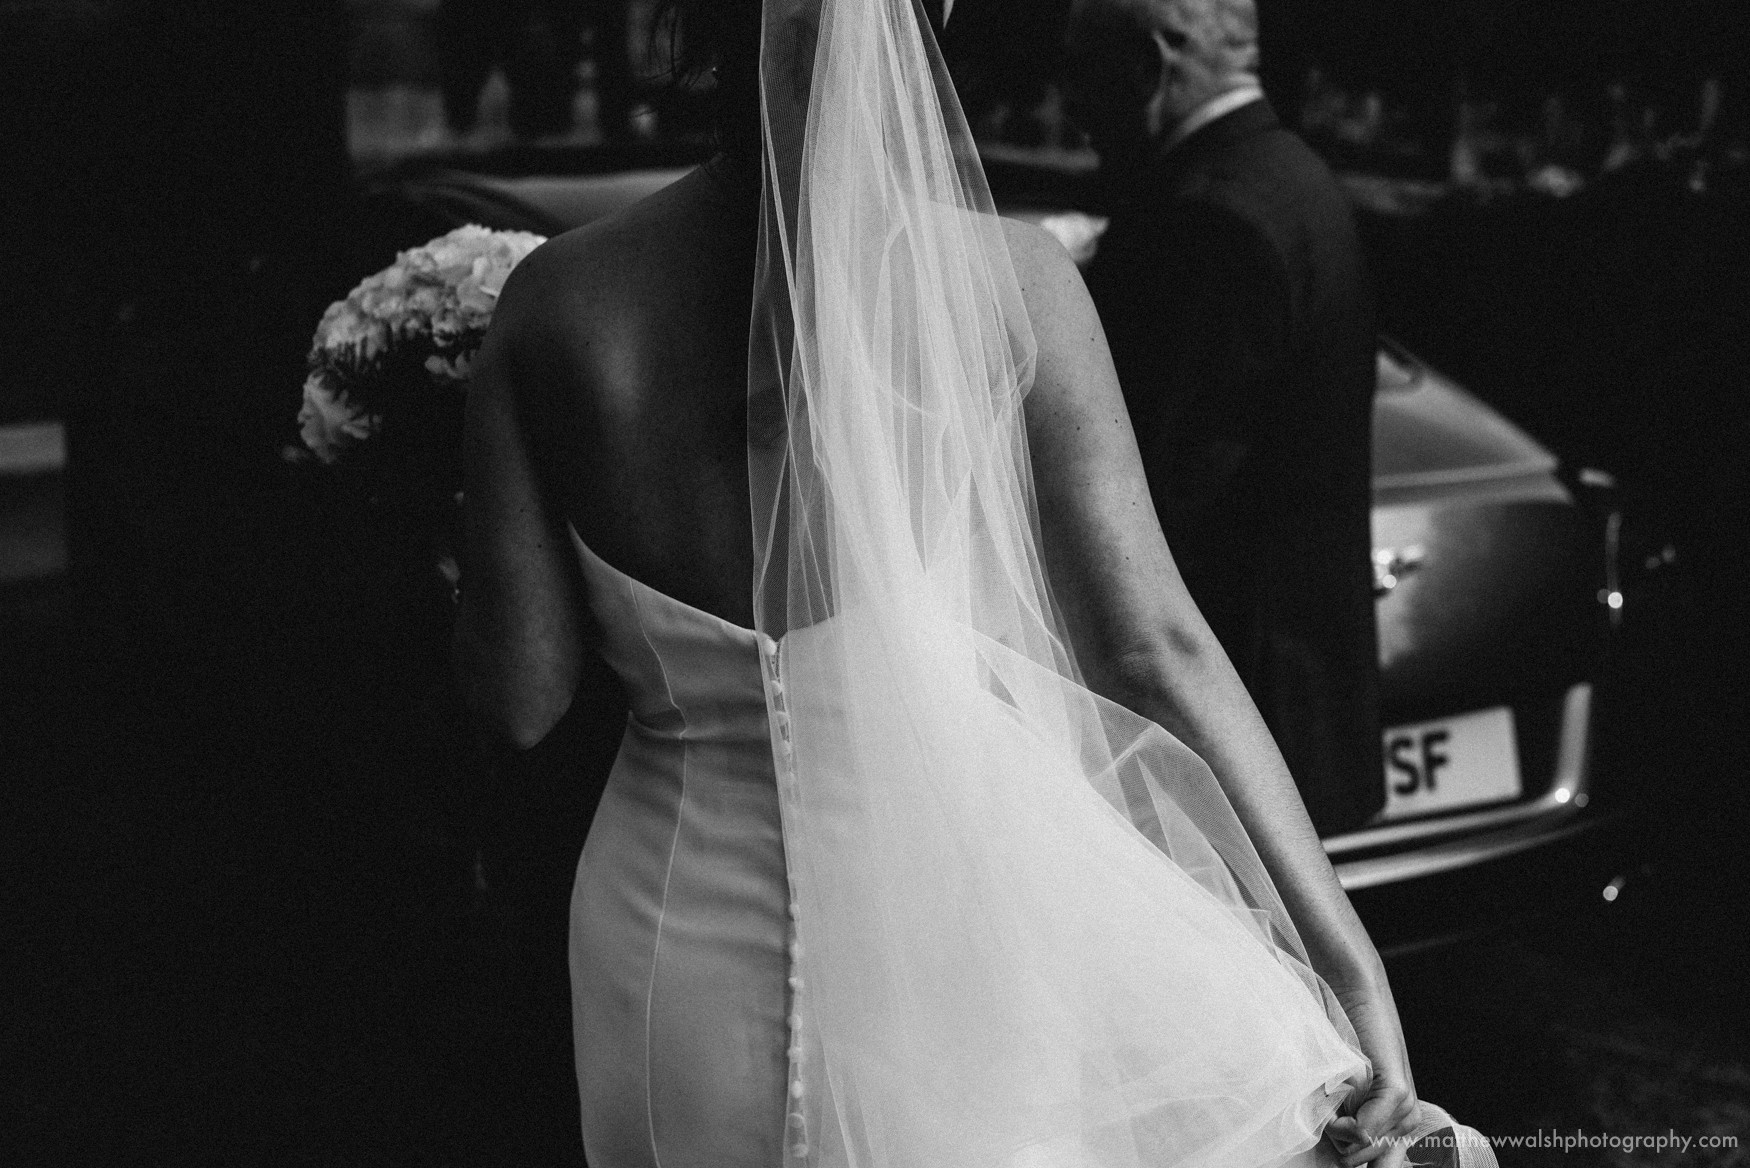 Back detail of the brides beautiful wedding dress